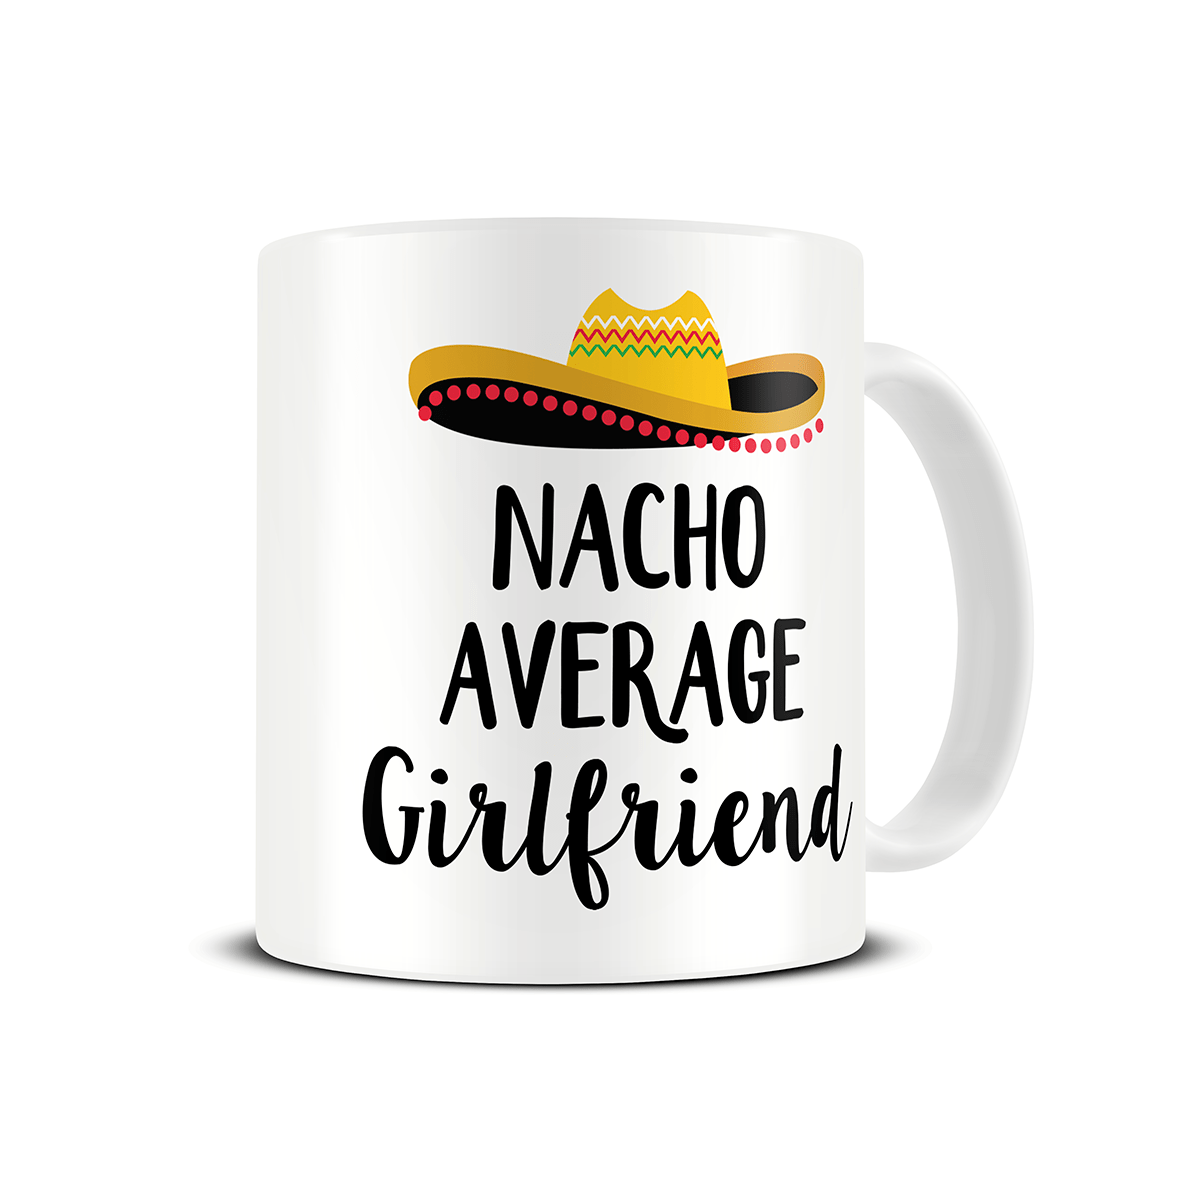 nacho-average-girlfriend-gift-mug